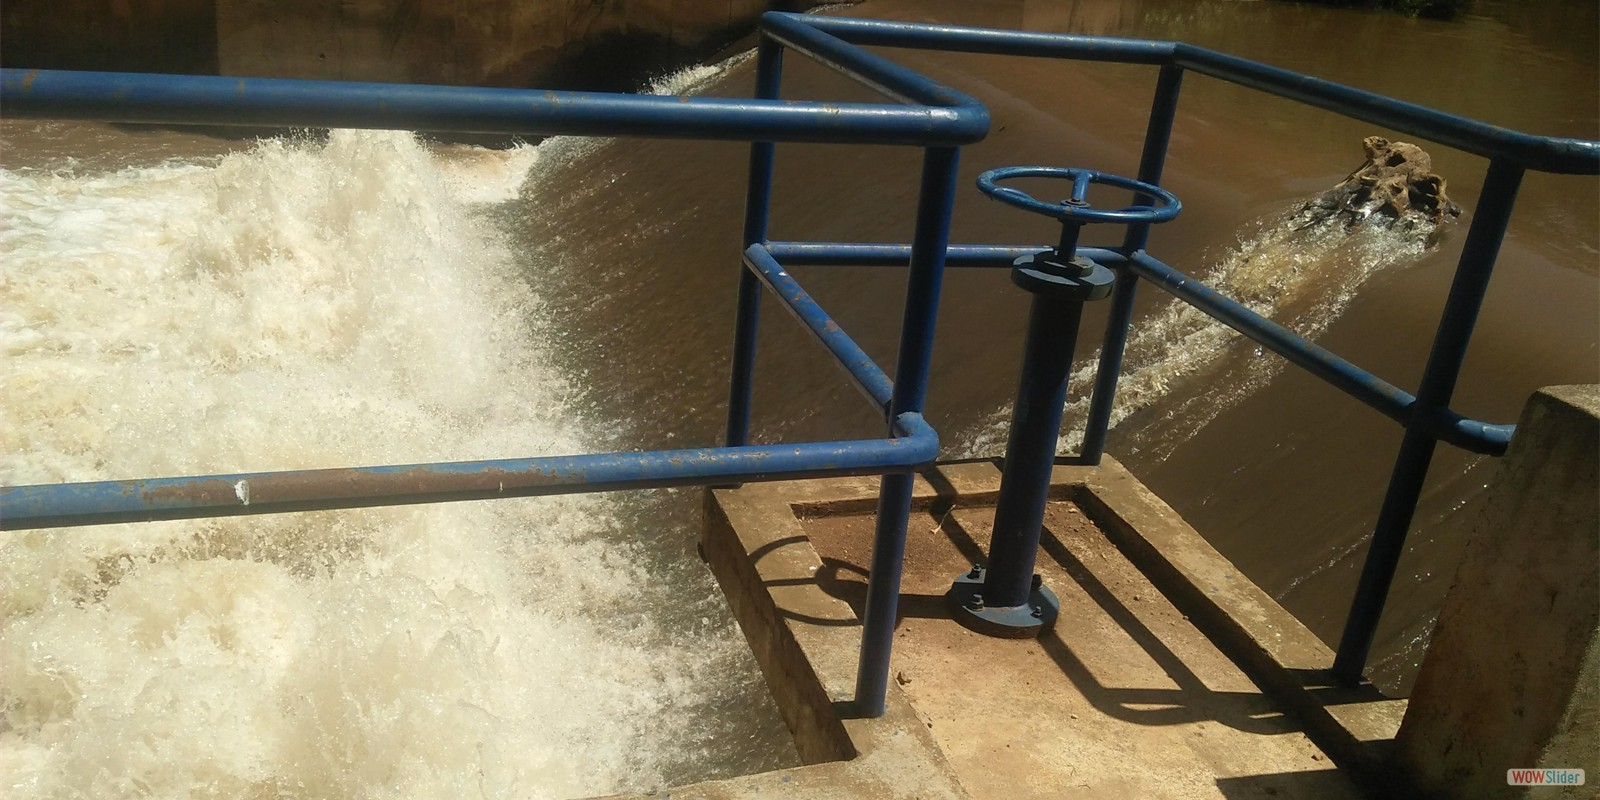 NYANGORI WATER TREATMENT(KEROKA)